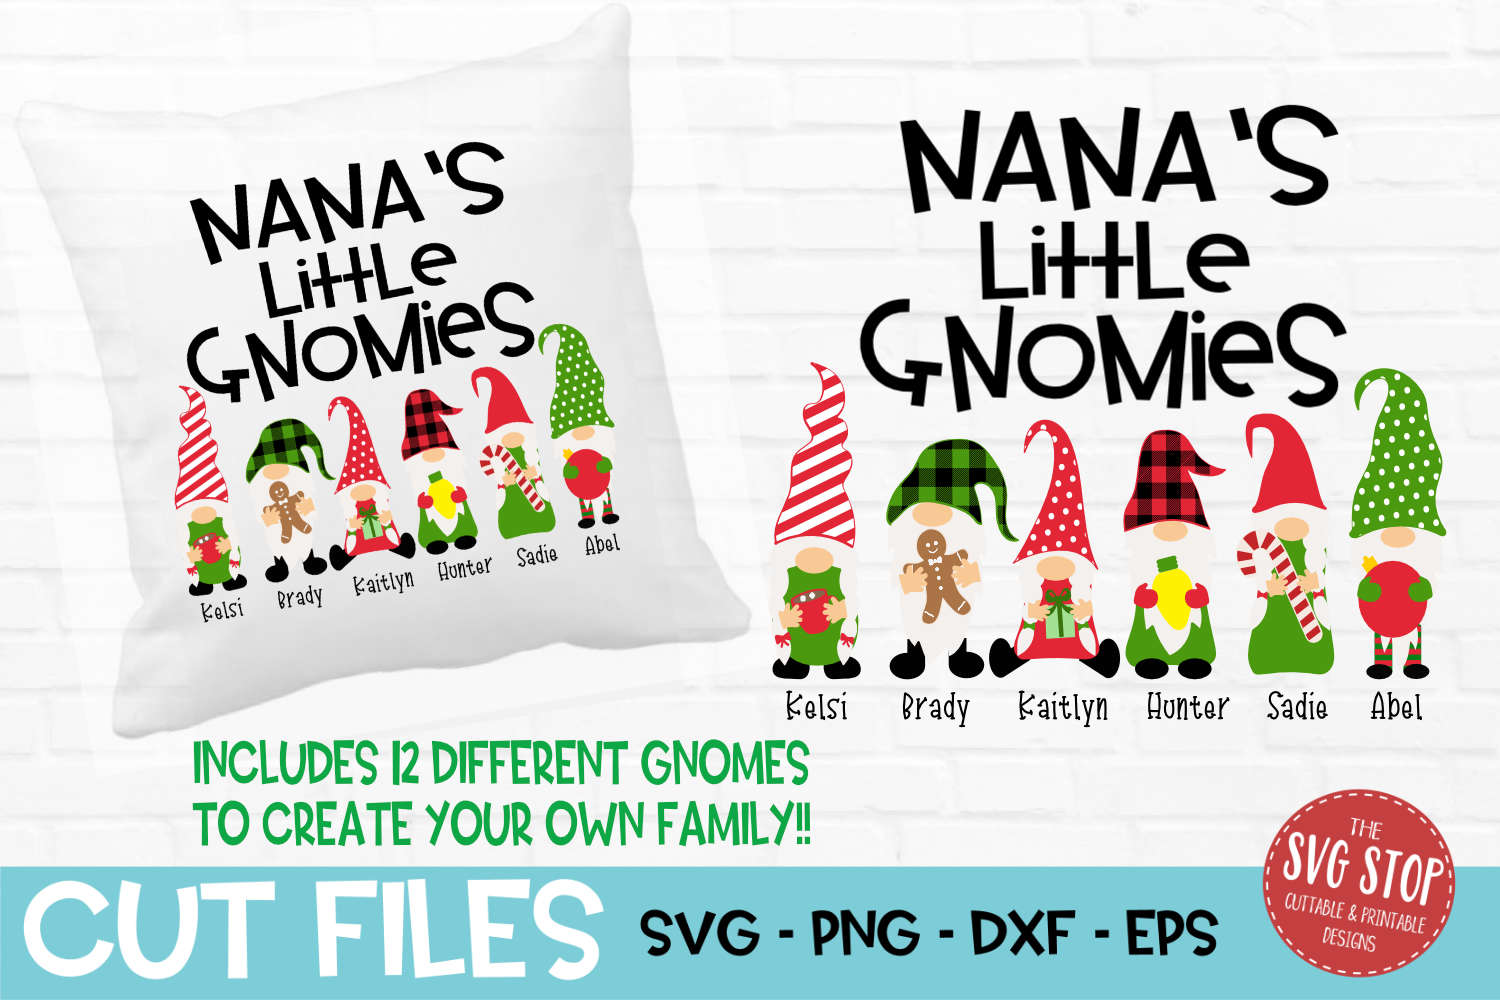 Nana's Little Gnomies Christmas SVG, PNG, DXF, EPS example image 1